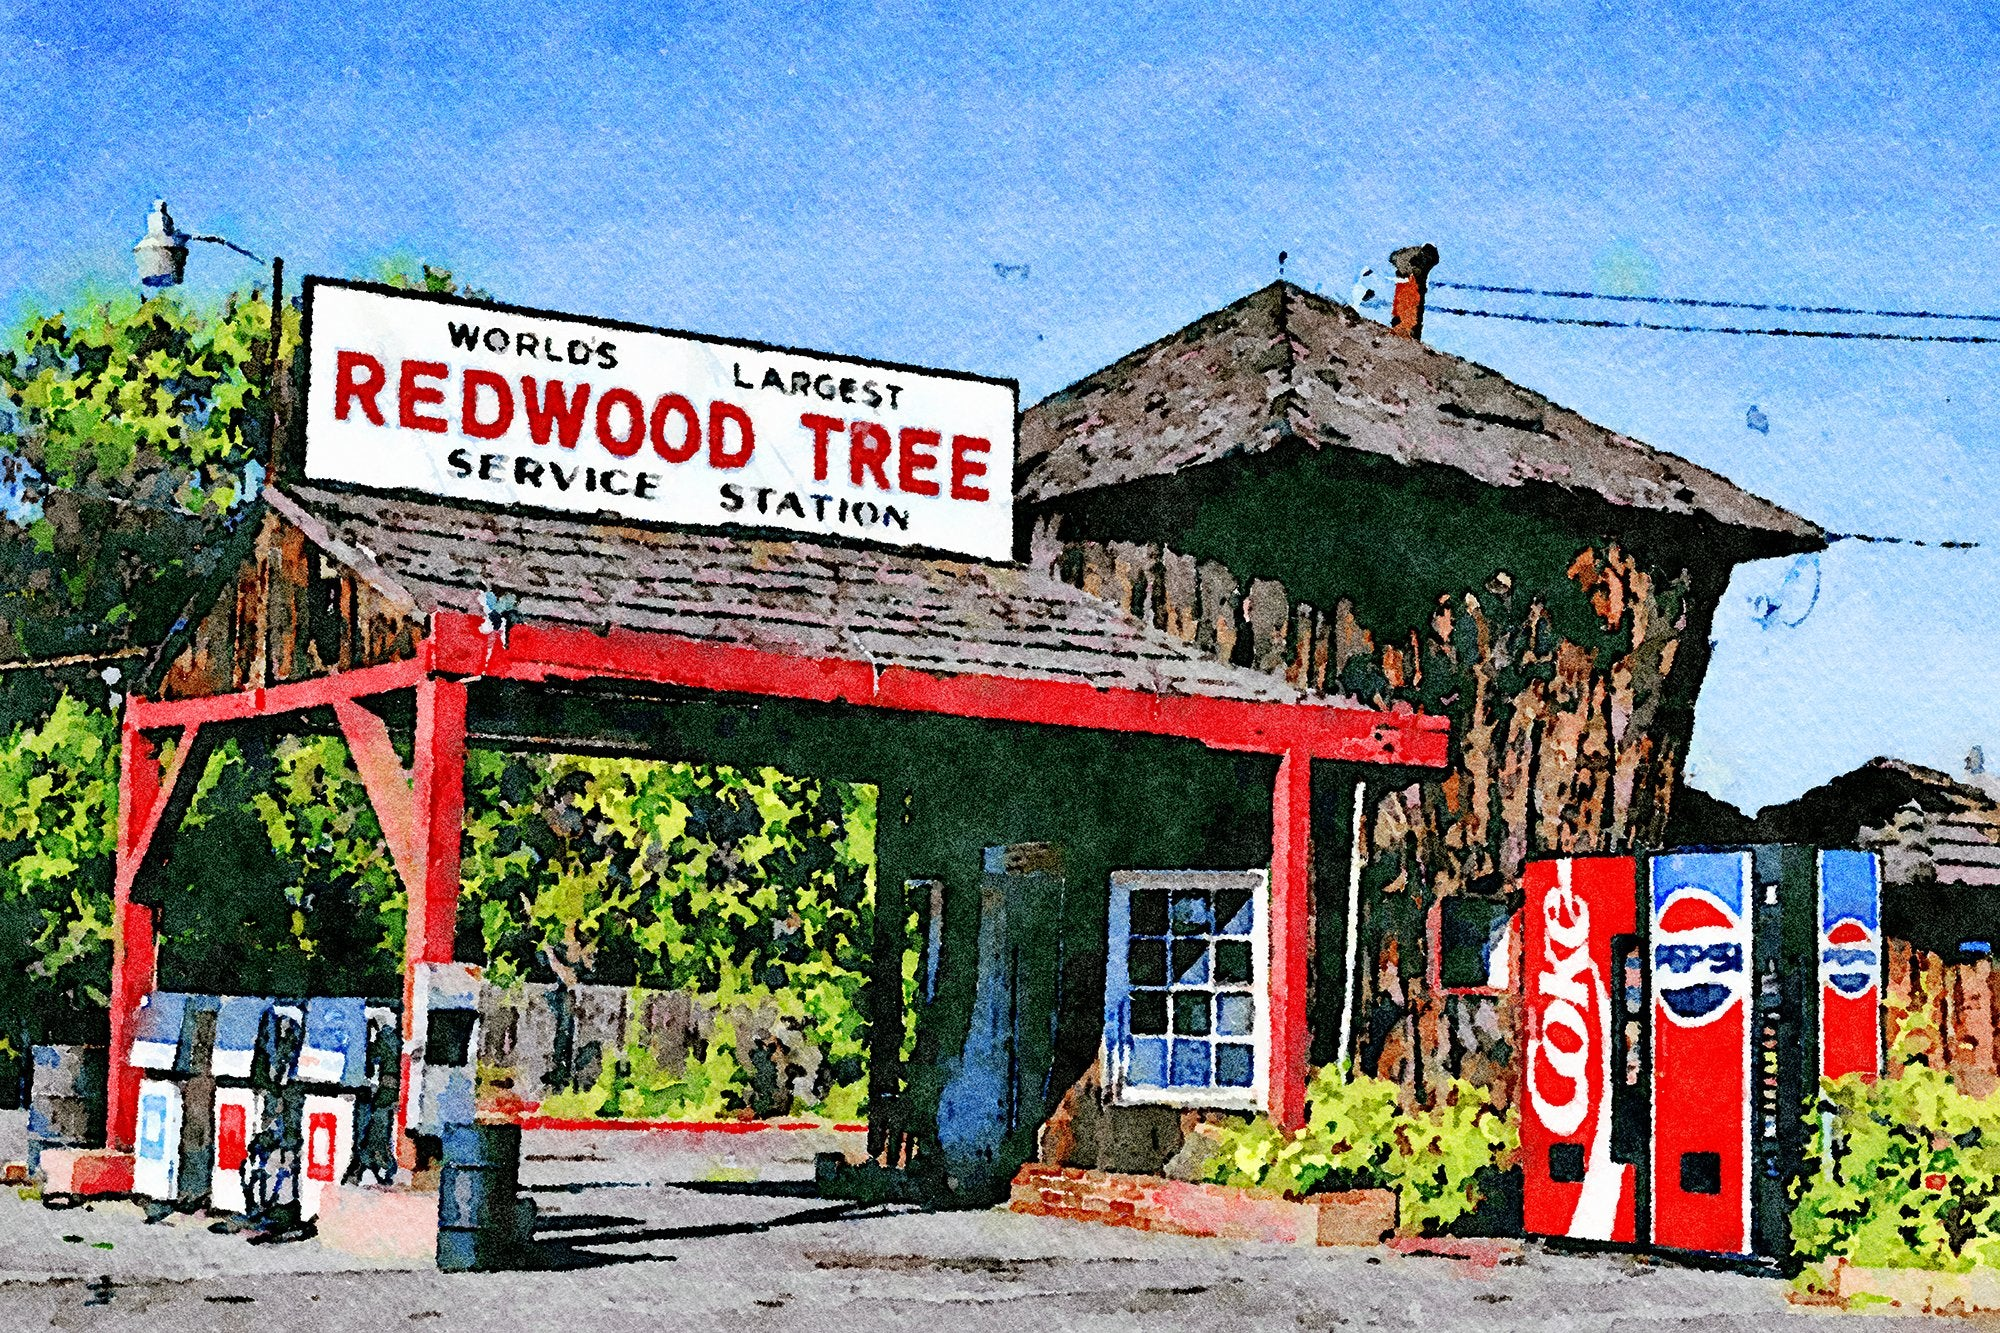 World's Largest Redwood Tree Service Station, Route 101, Ukiah, California, Reworked, Series 1